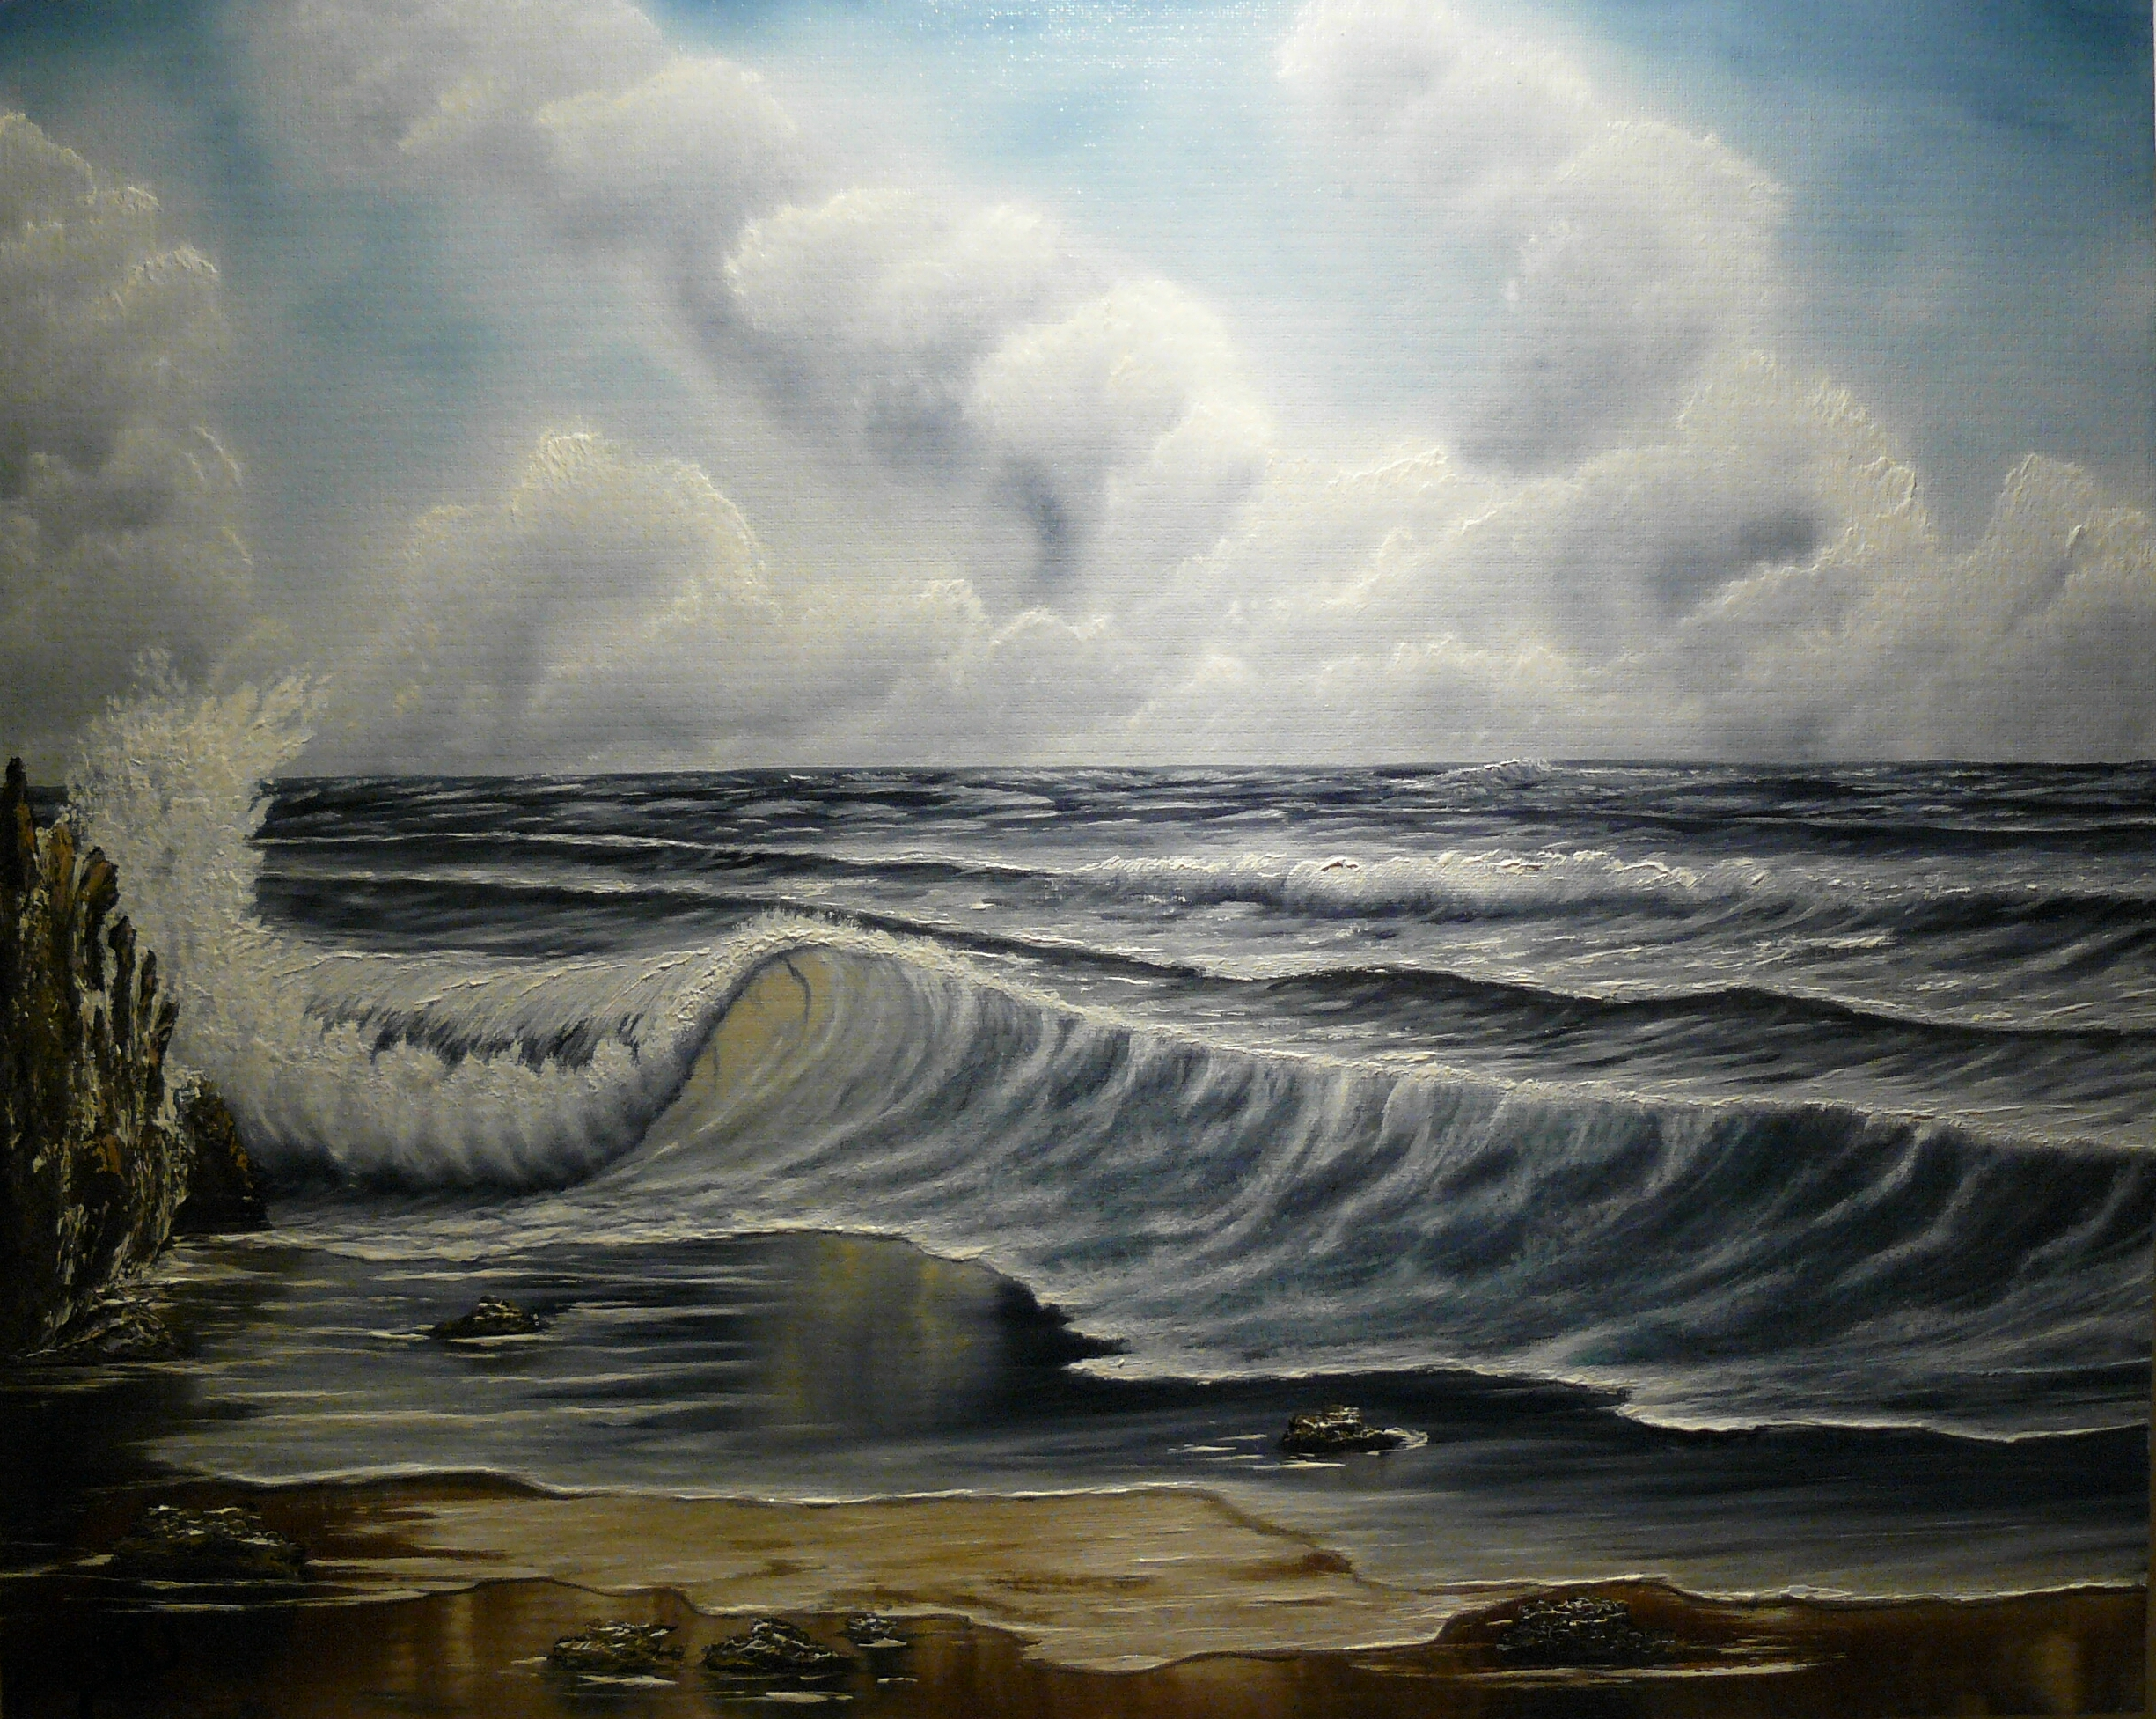 """Big ocean wave"". 2012. Olja, 40x50 cm."